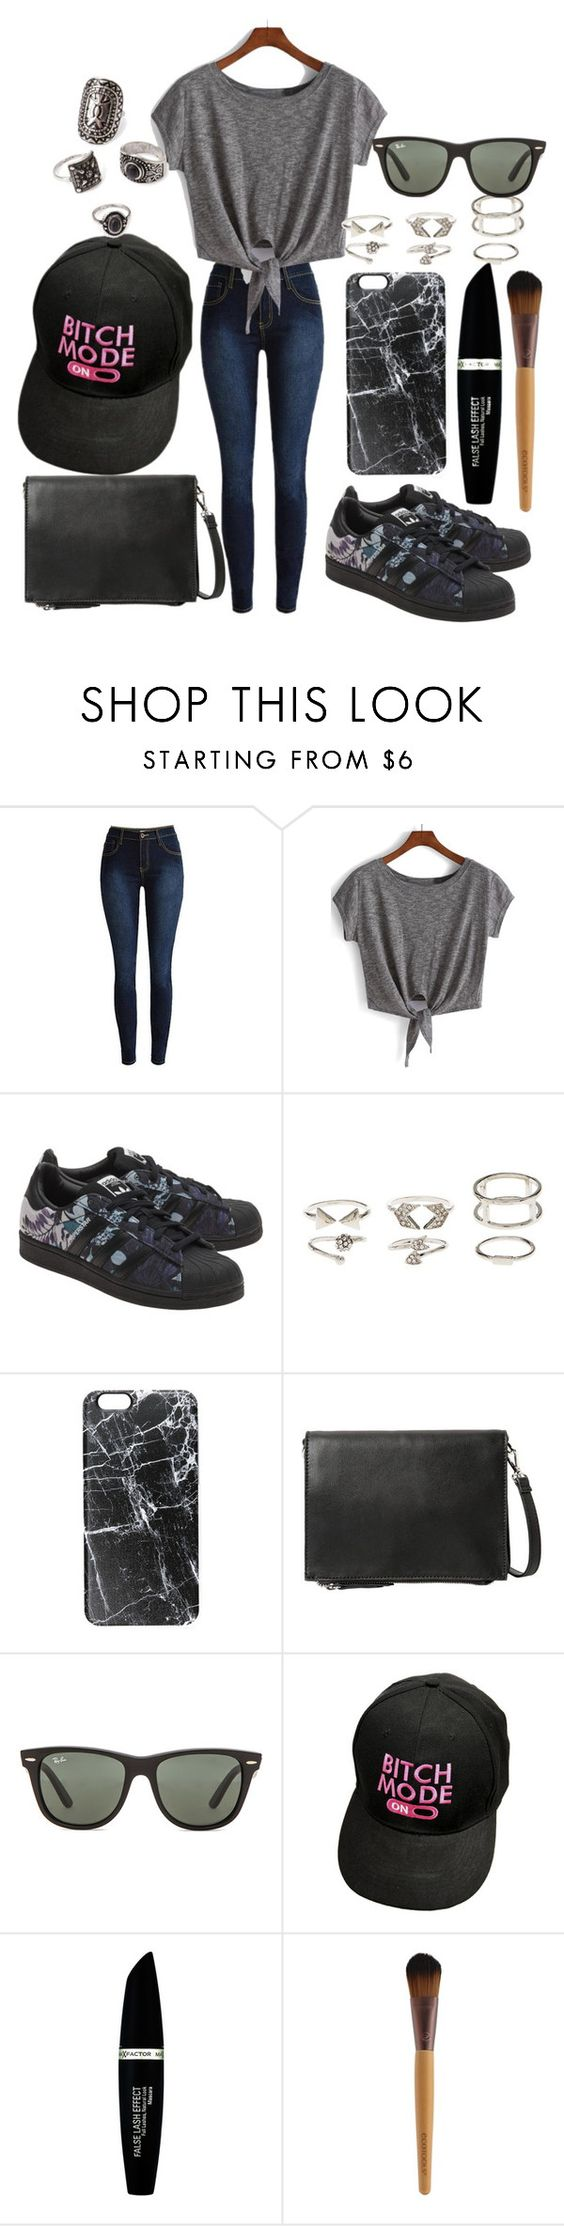 """""""Untitled #124"""" by the-fashion-fantasy ❤ liked on Polyvore featuring adidas Originals, Charlotte Russe, Casetify, MANGO, Ray-Ban, Max Factor and Forever 21"""